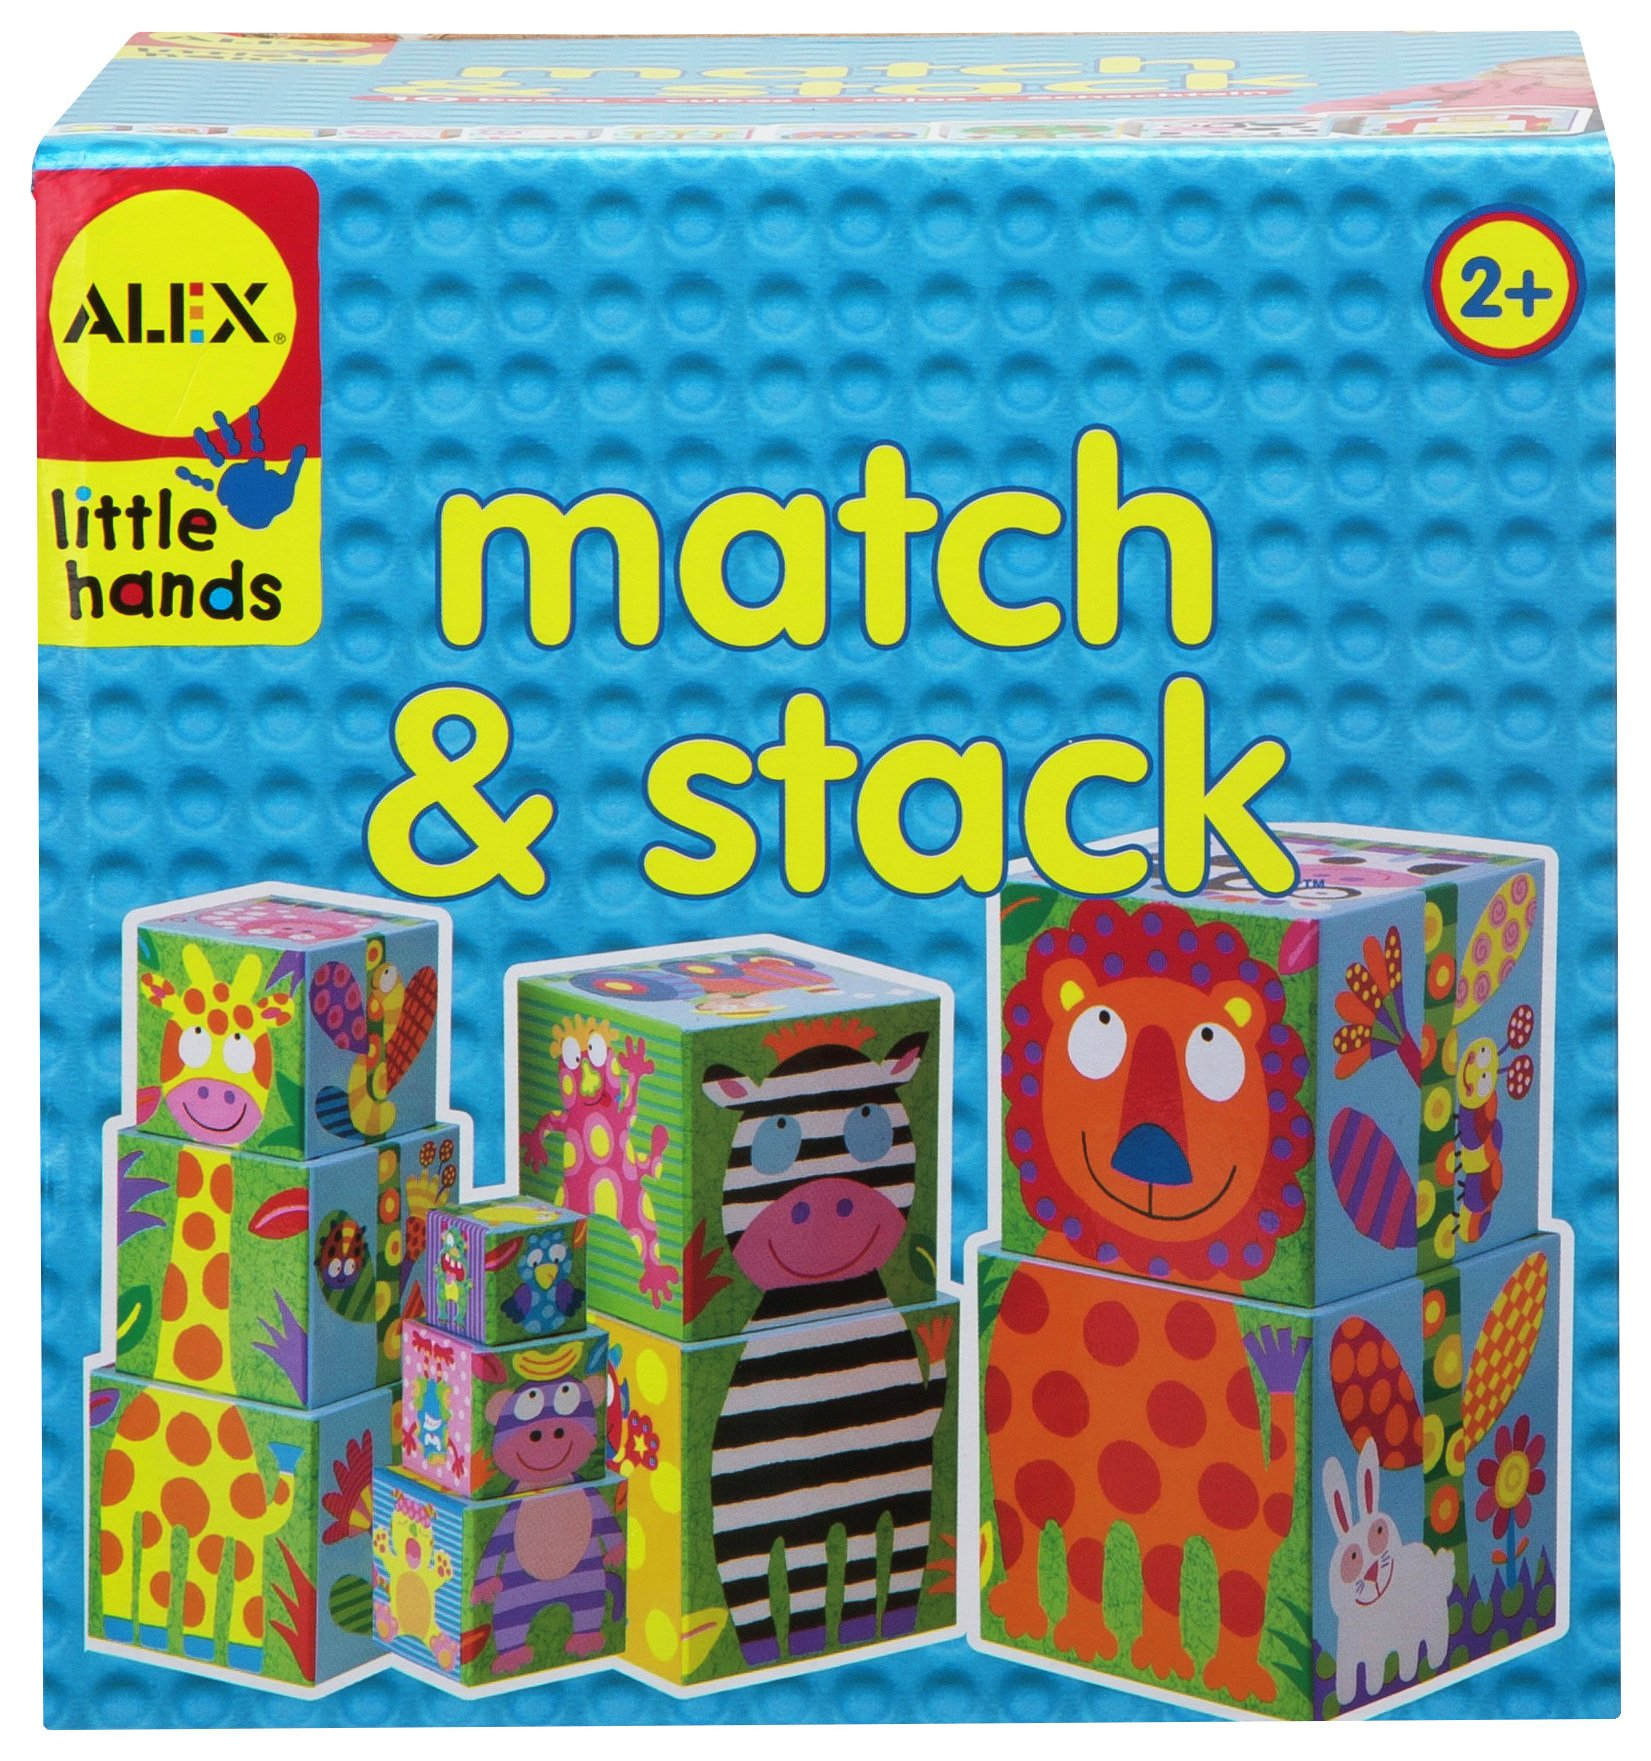 Image of Alex Match & Stack